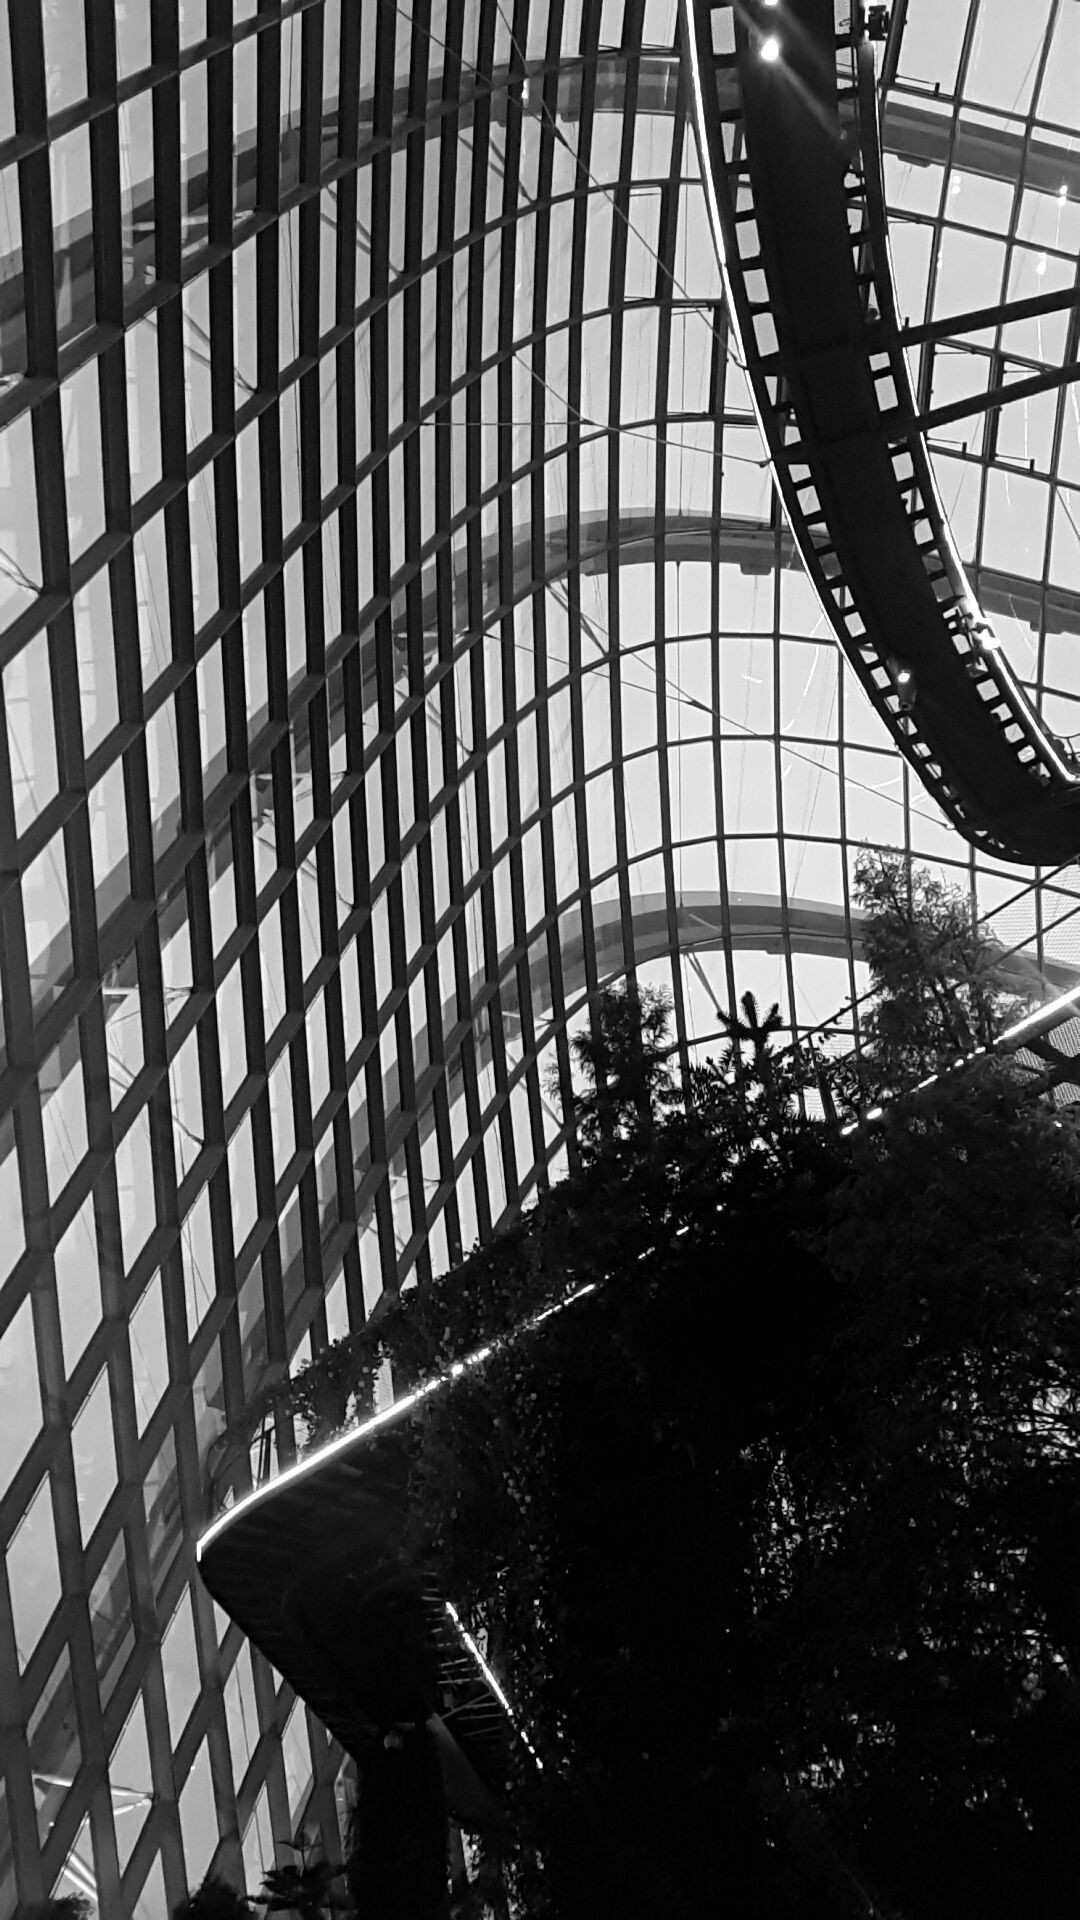 Cloud Forest Garden by the Bay Singapore black & white